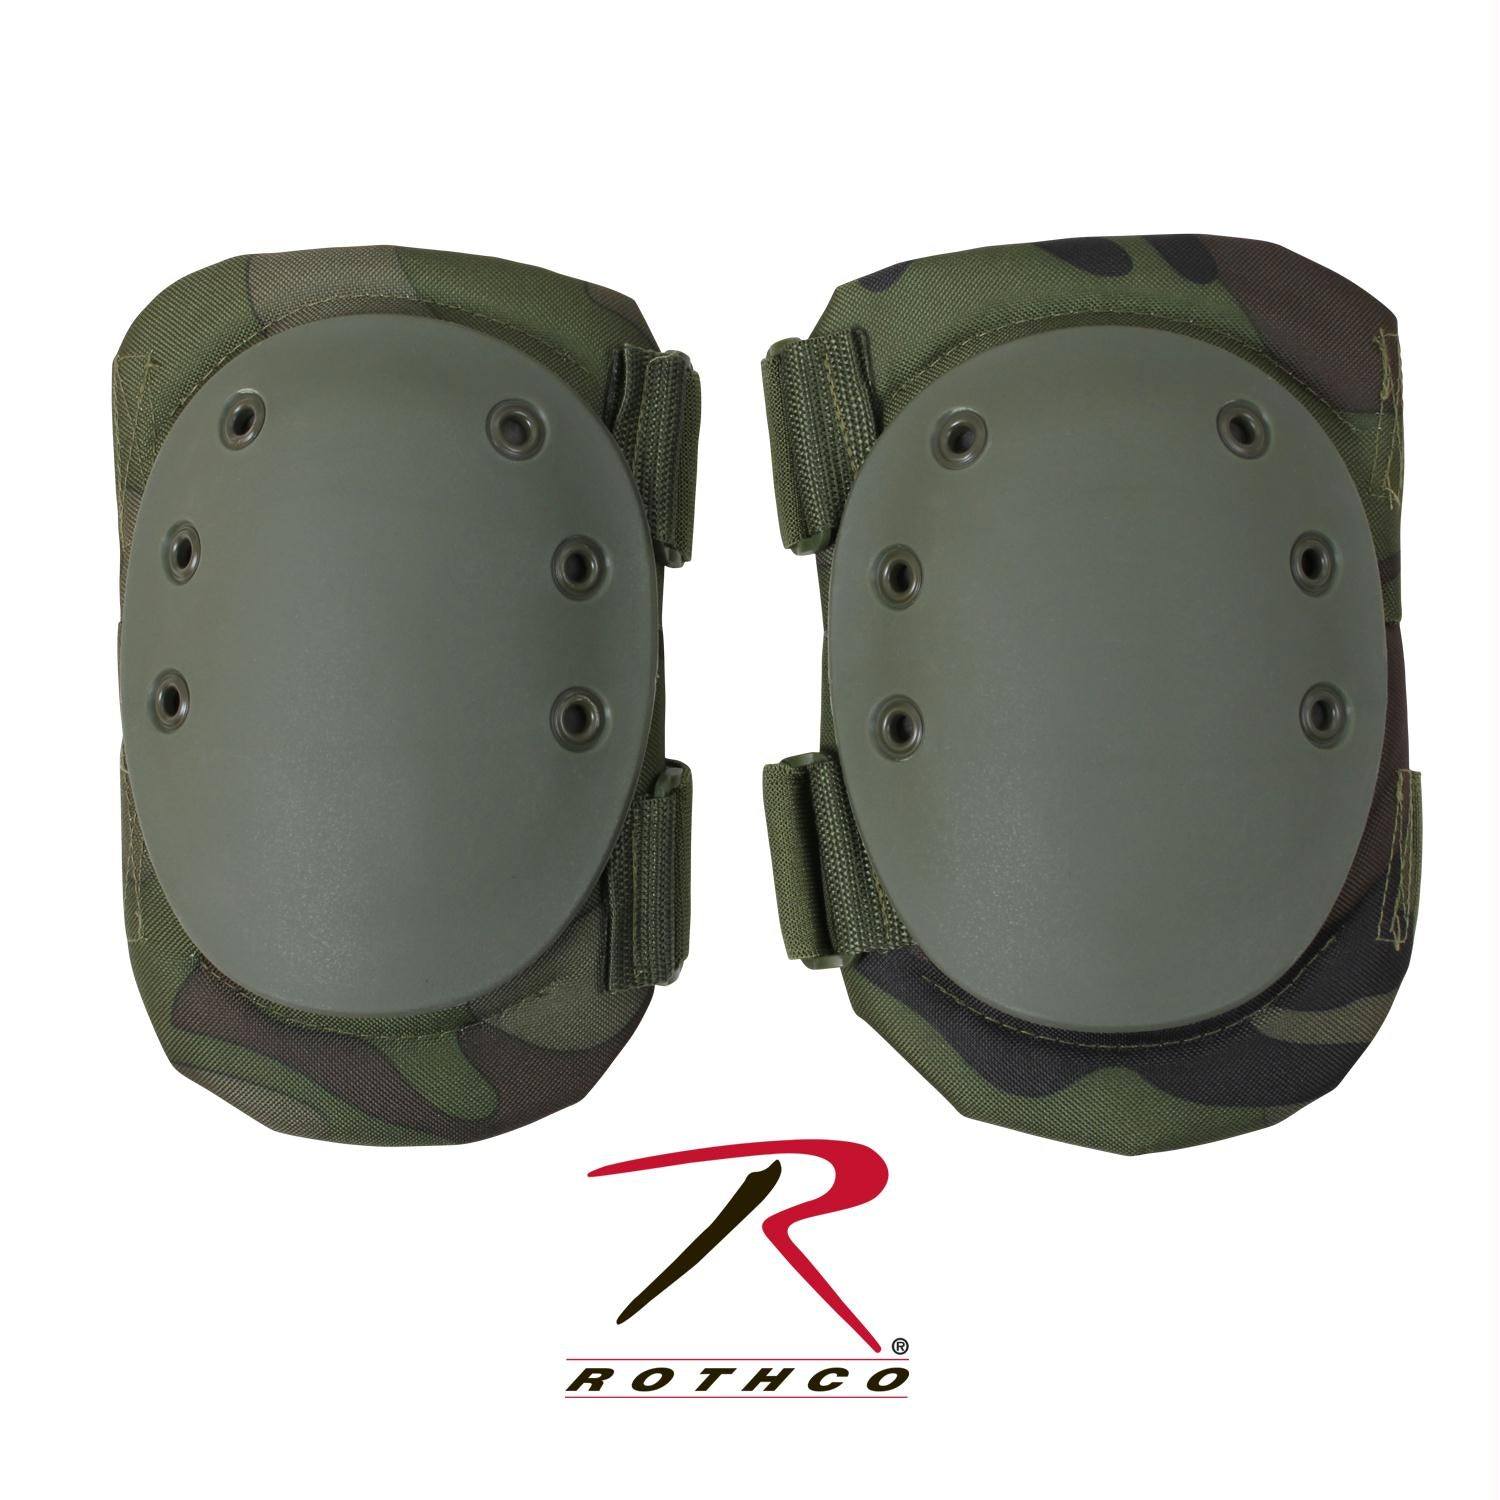 Rothco Tactical Protective Gear Knee Pads - Woodland Camo